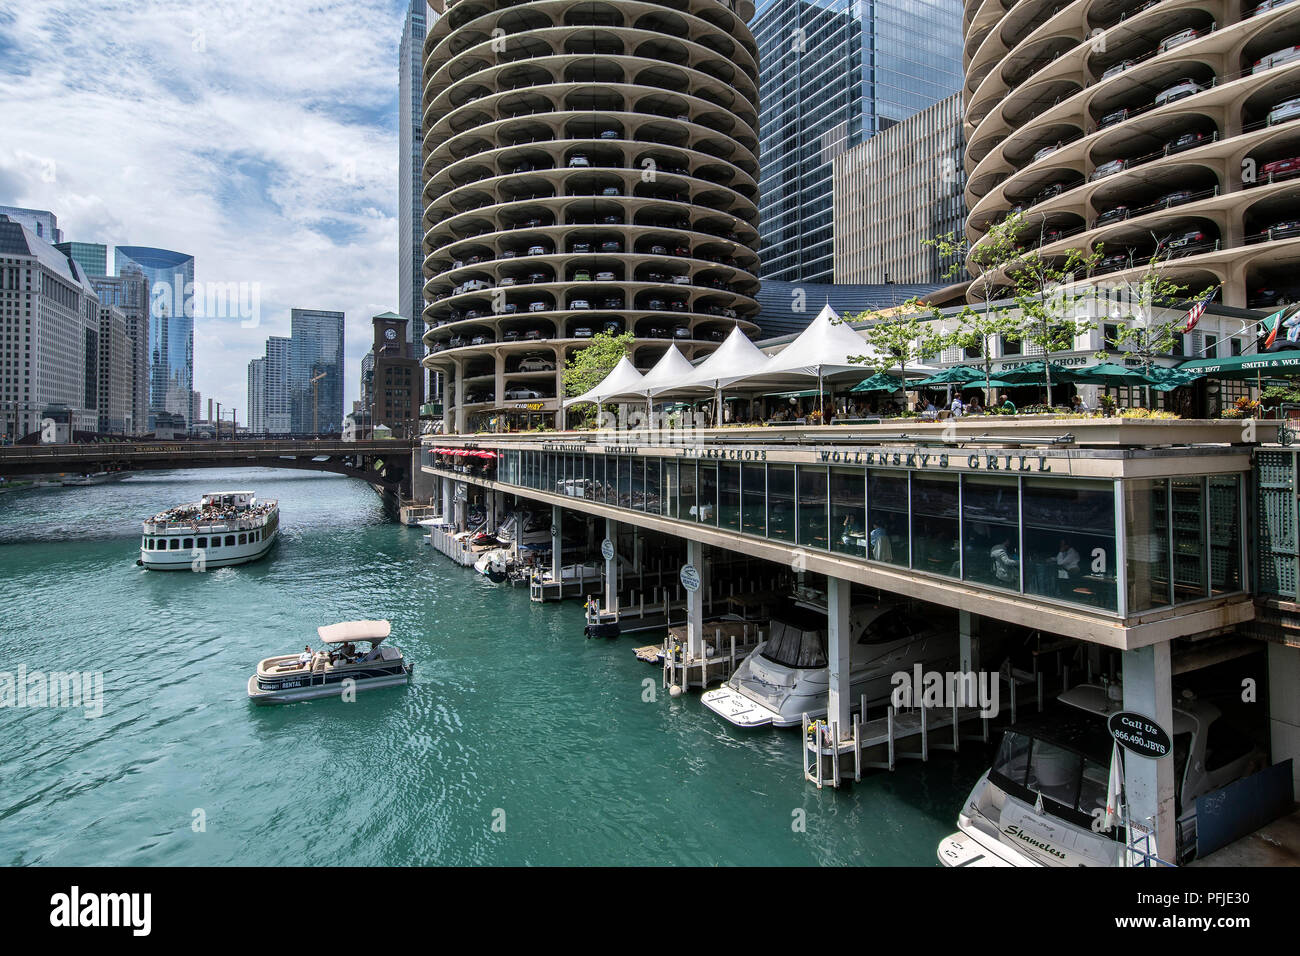 View of the Chicago River from the State Street Bridge, Marina Towers, Downtown Chicago. - Stock Image